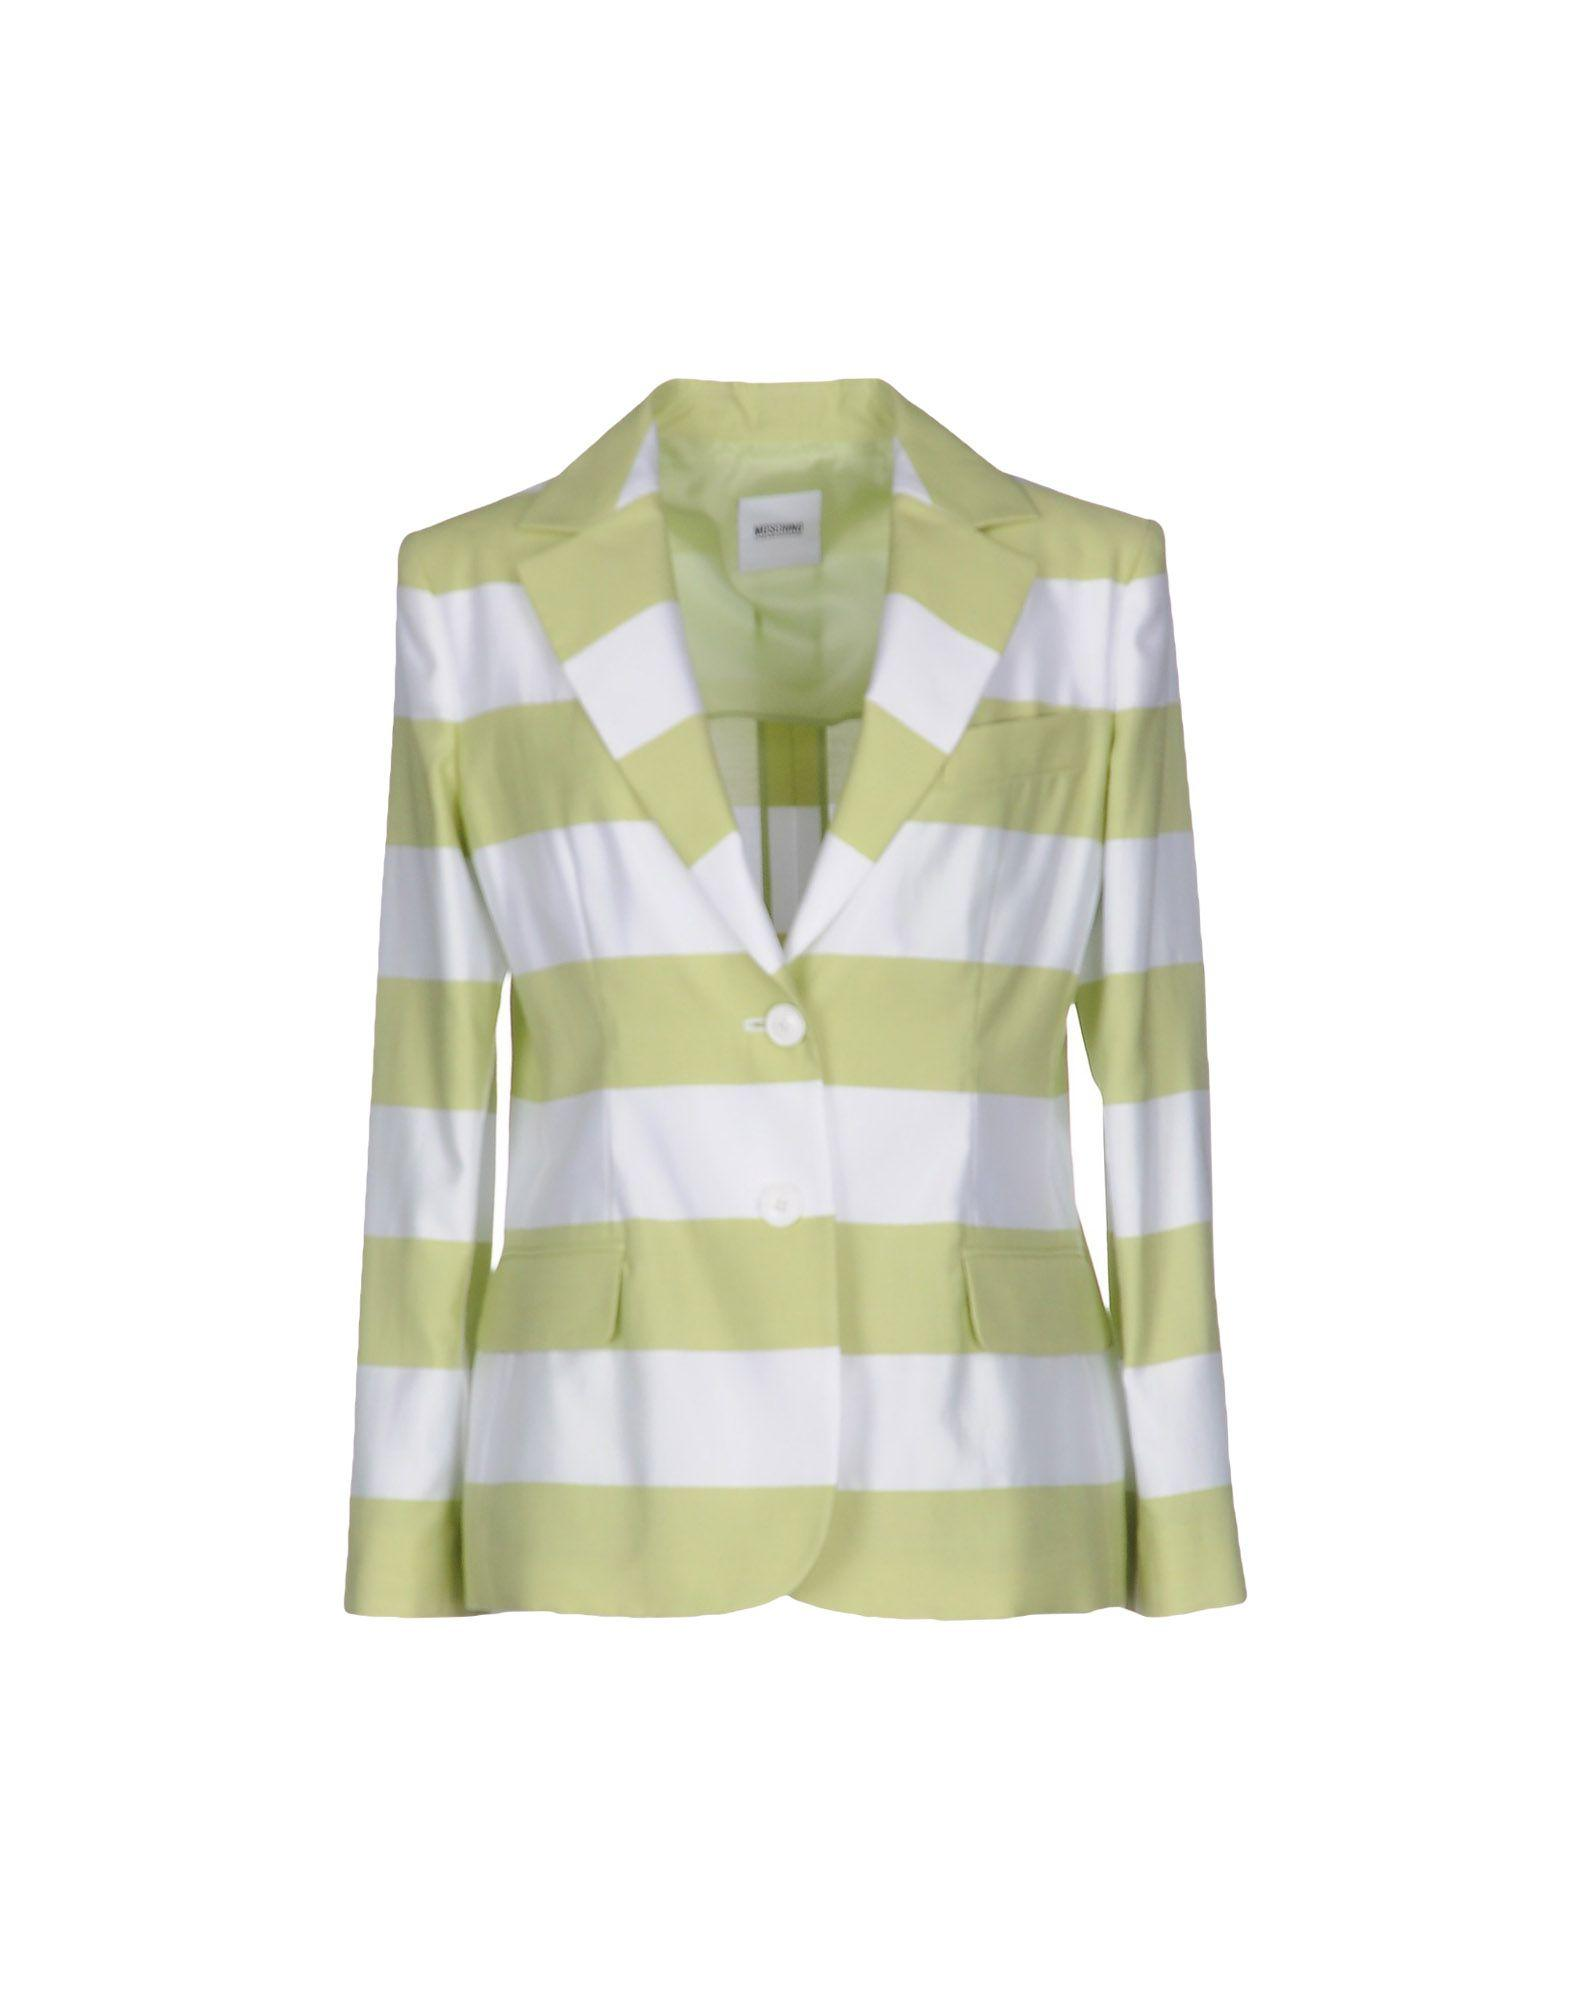 Moschino Cheap And Chic Blazer In Acid Green